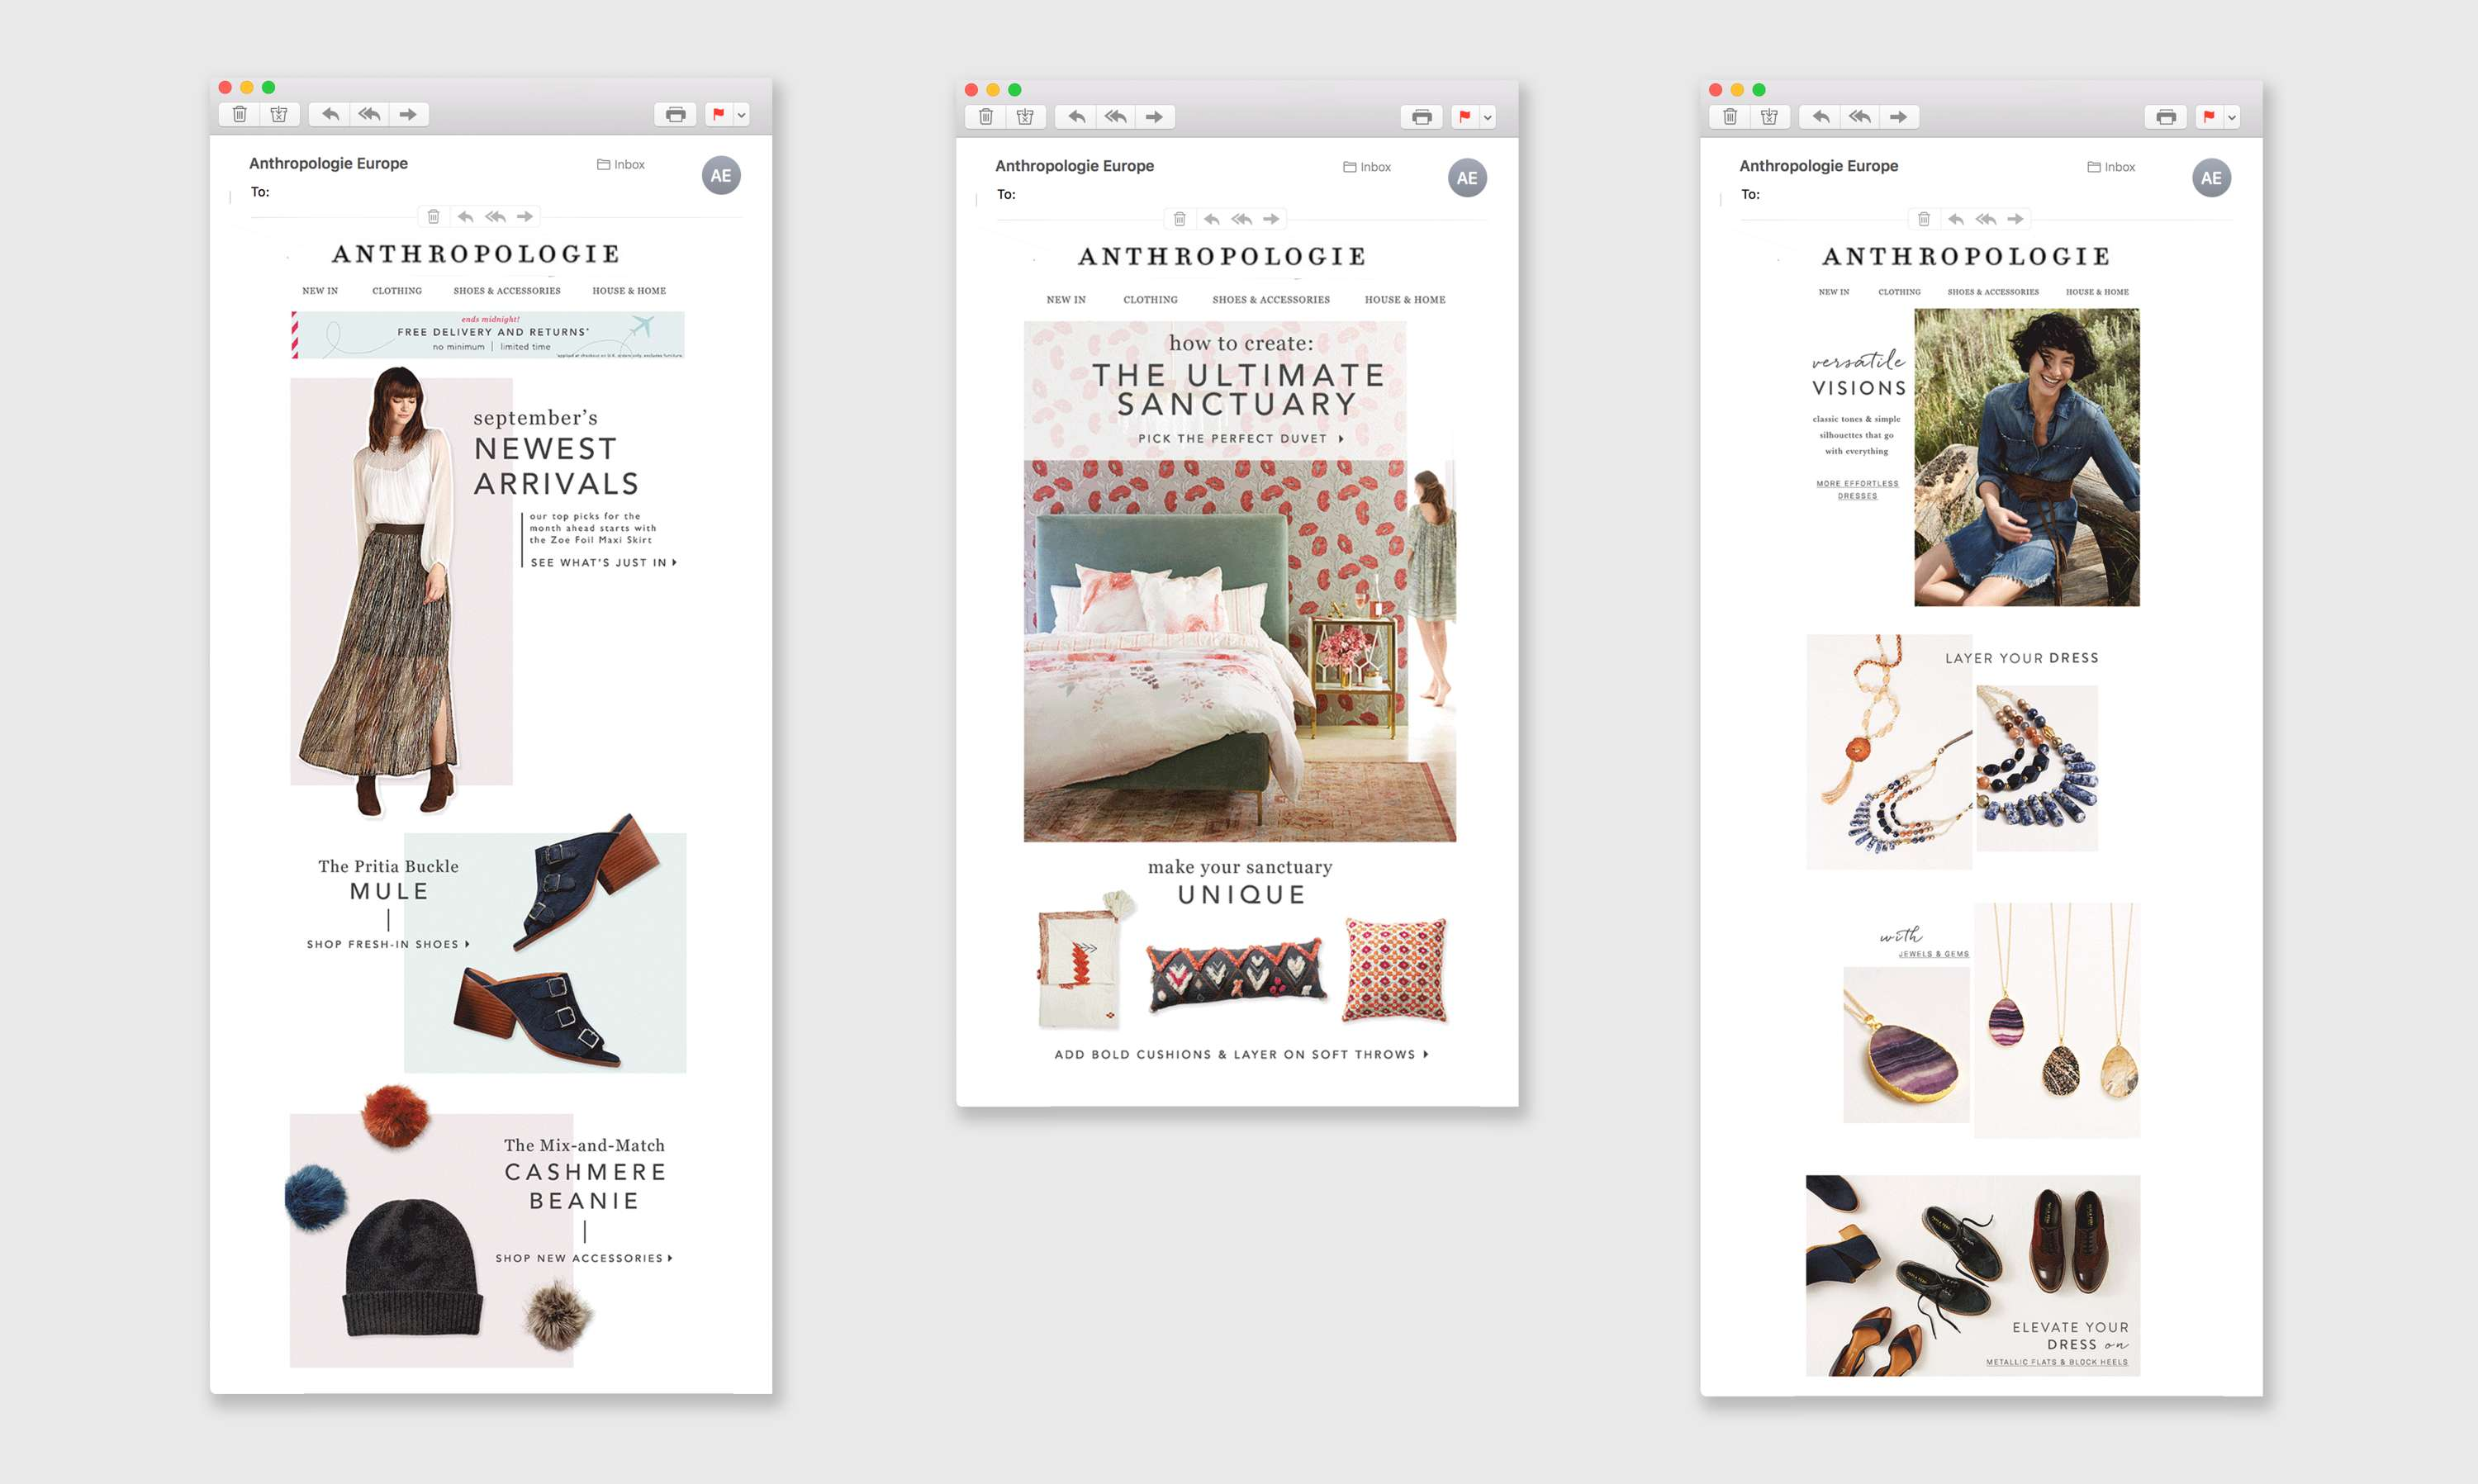 afe0434a5ee9 Anthropologie Europe | The Dots